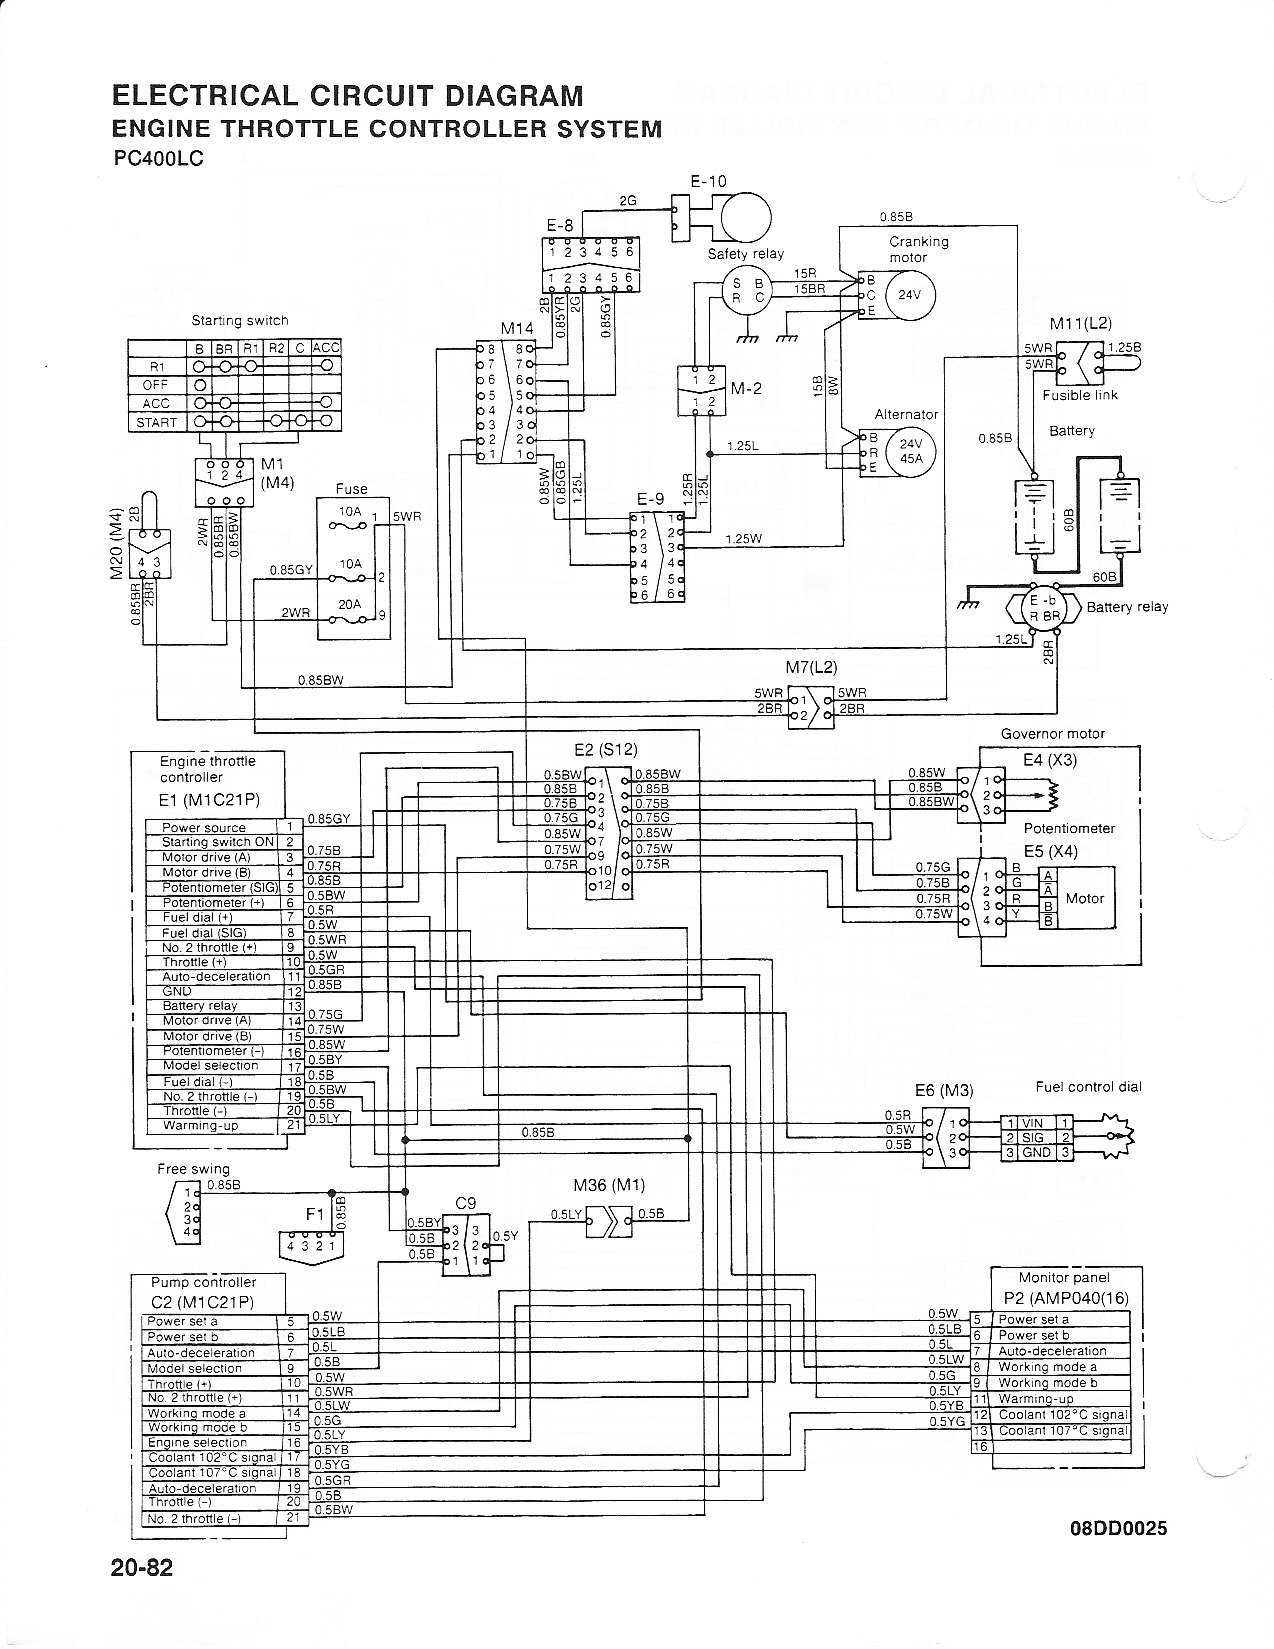 2012 02 21_021124_pc400_0001 wiring diagram for 2007 freightliner columbia ireleast  at nearapp.co